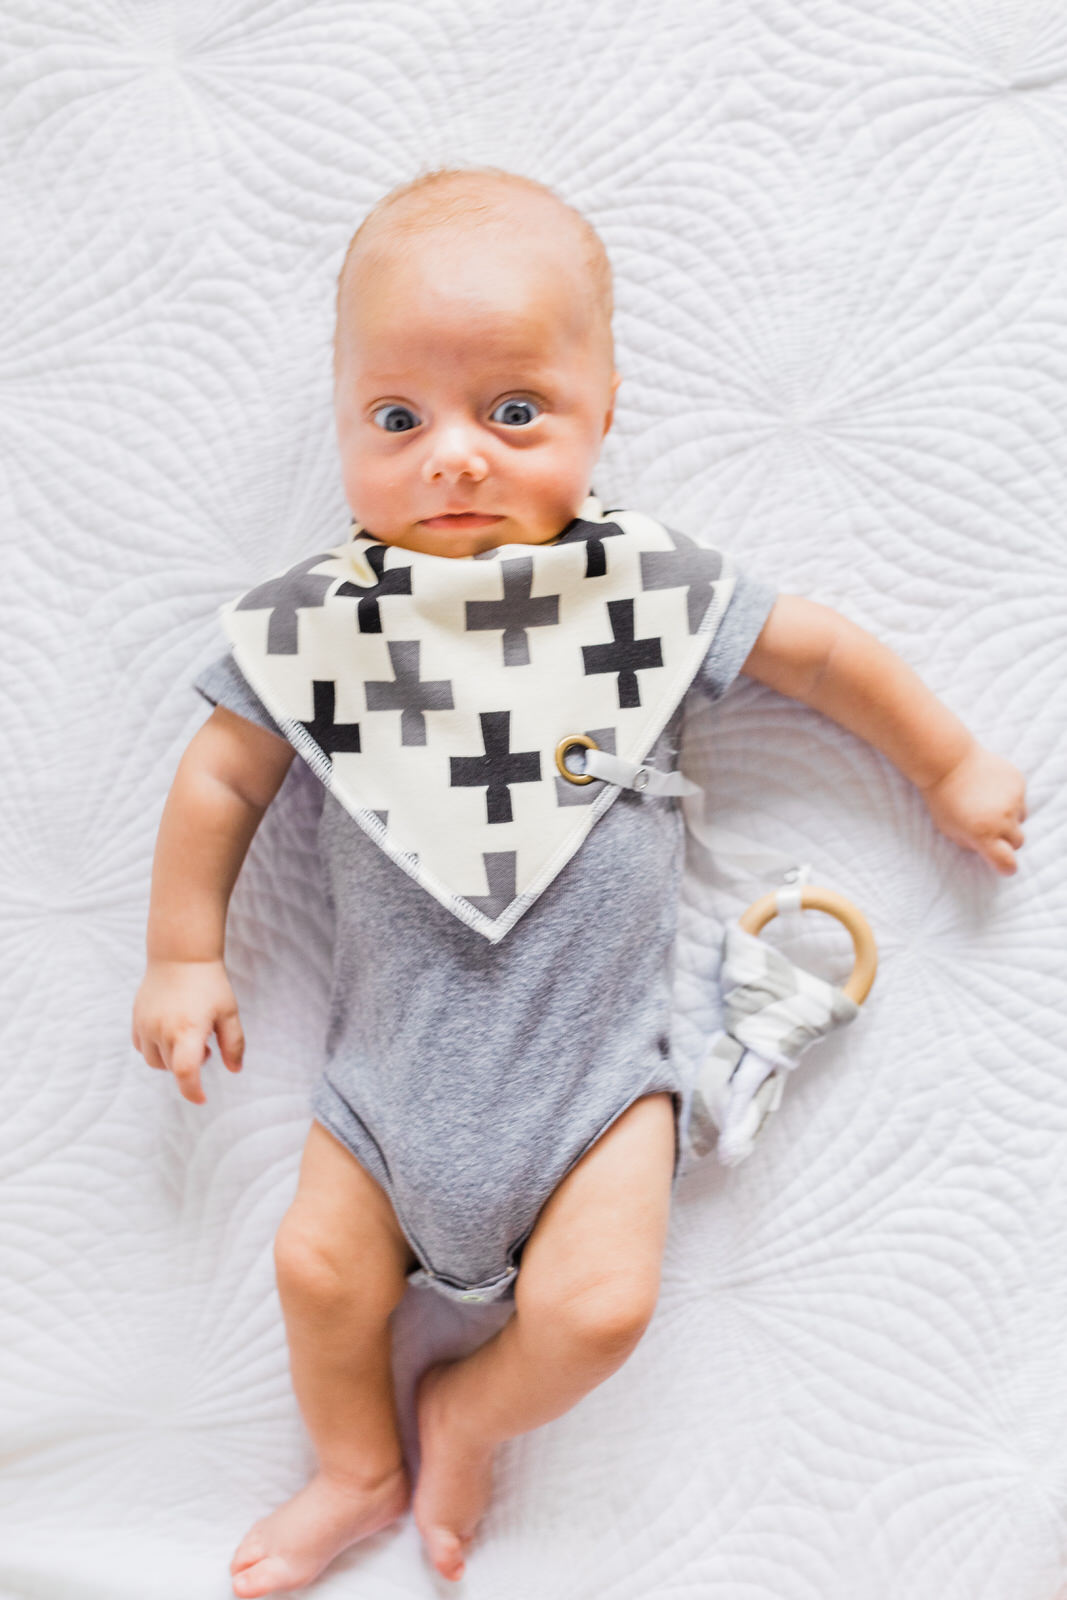 kids-clothes-small-business-baby-newborn-collaboration-7692.jpg